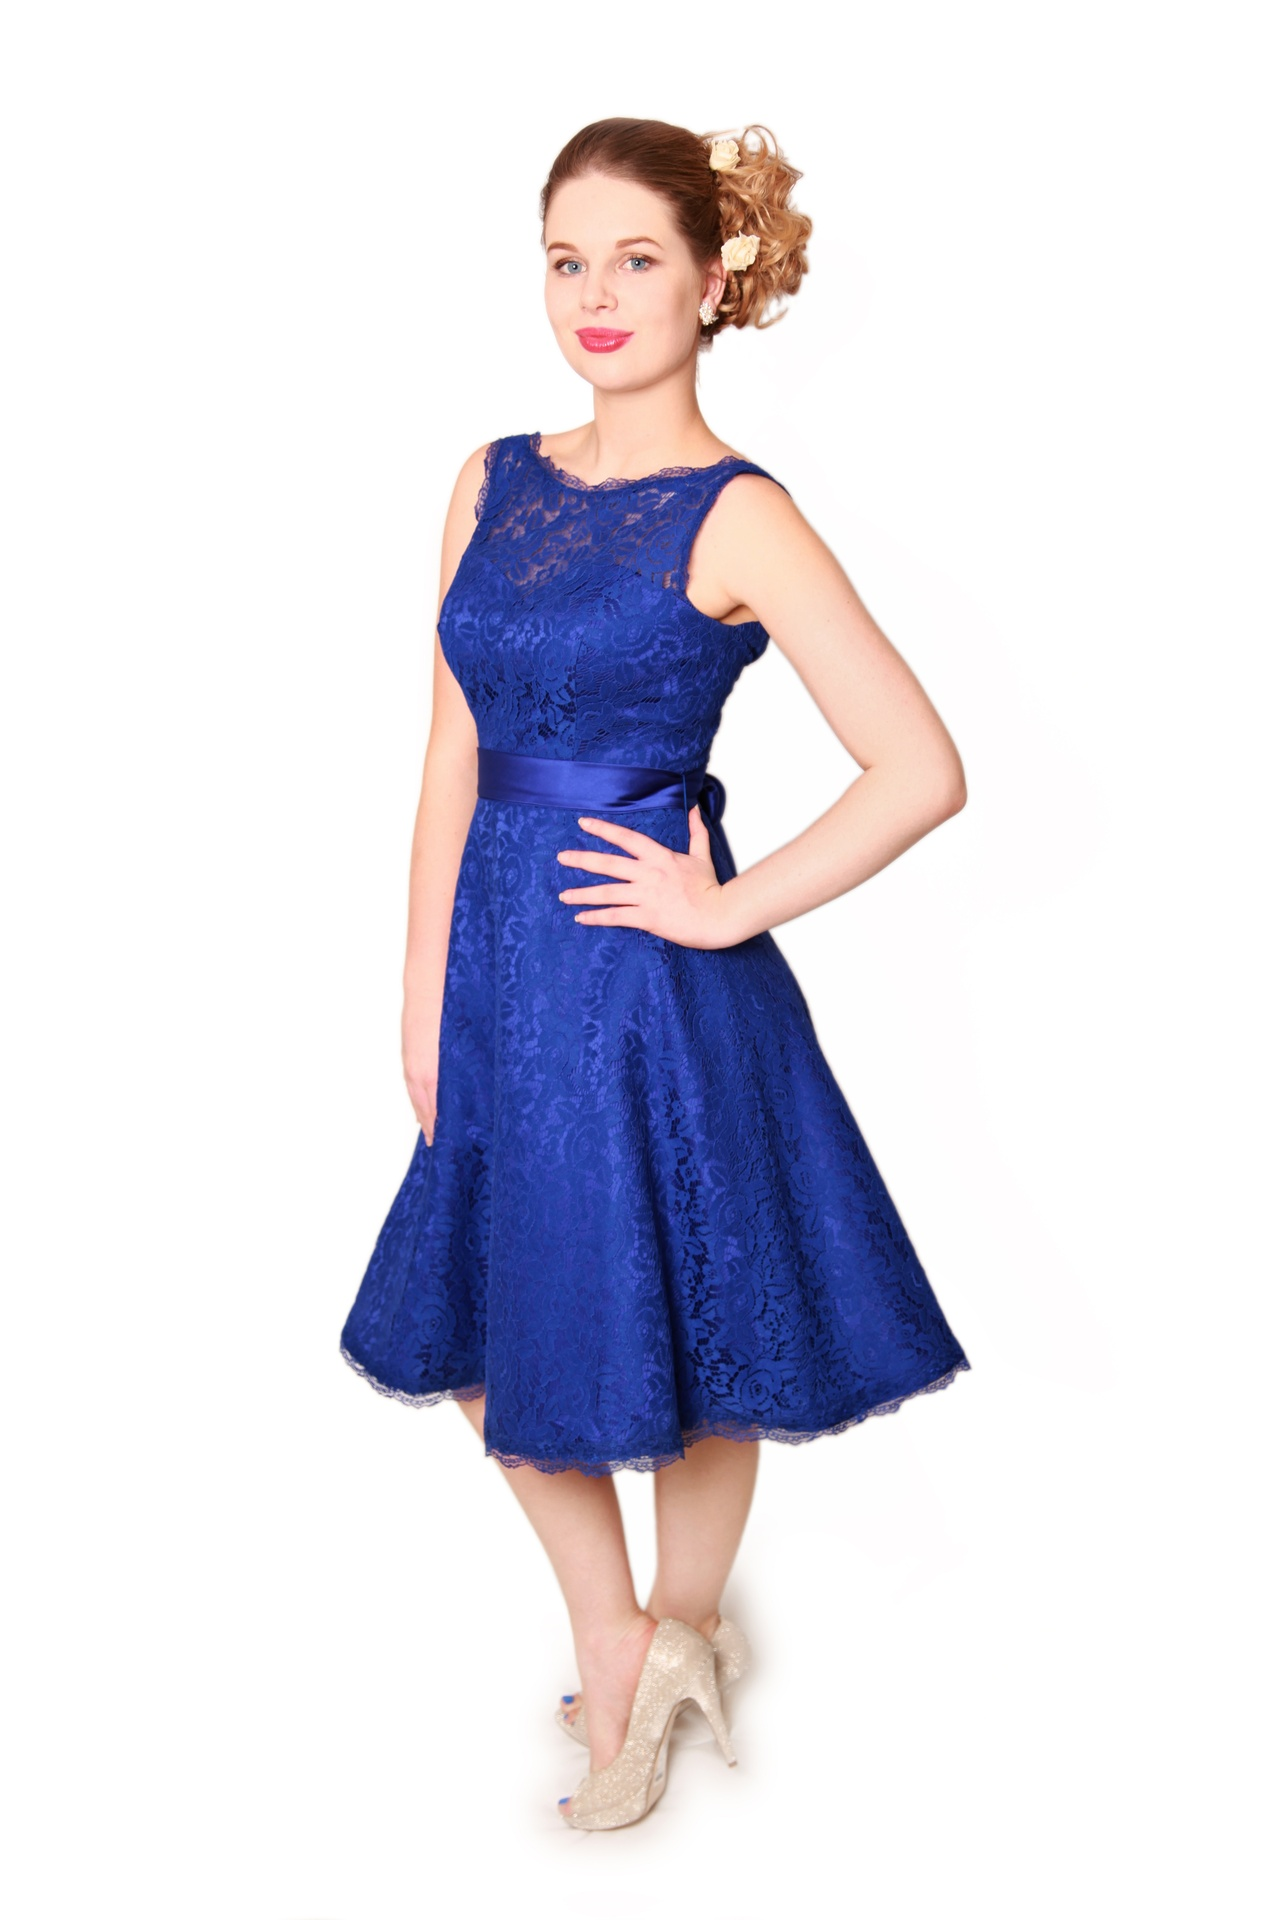 Moodboard royal blue wedding embm01 bella bridesmaid dress royal blue bridesmaid dress lace bridesmaid dress short ombrellifo Image collections